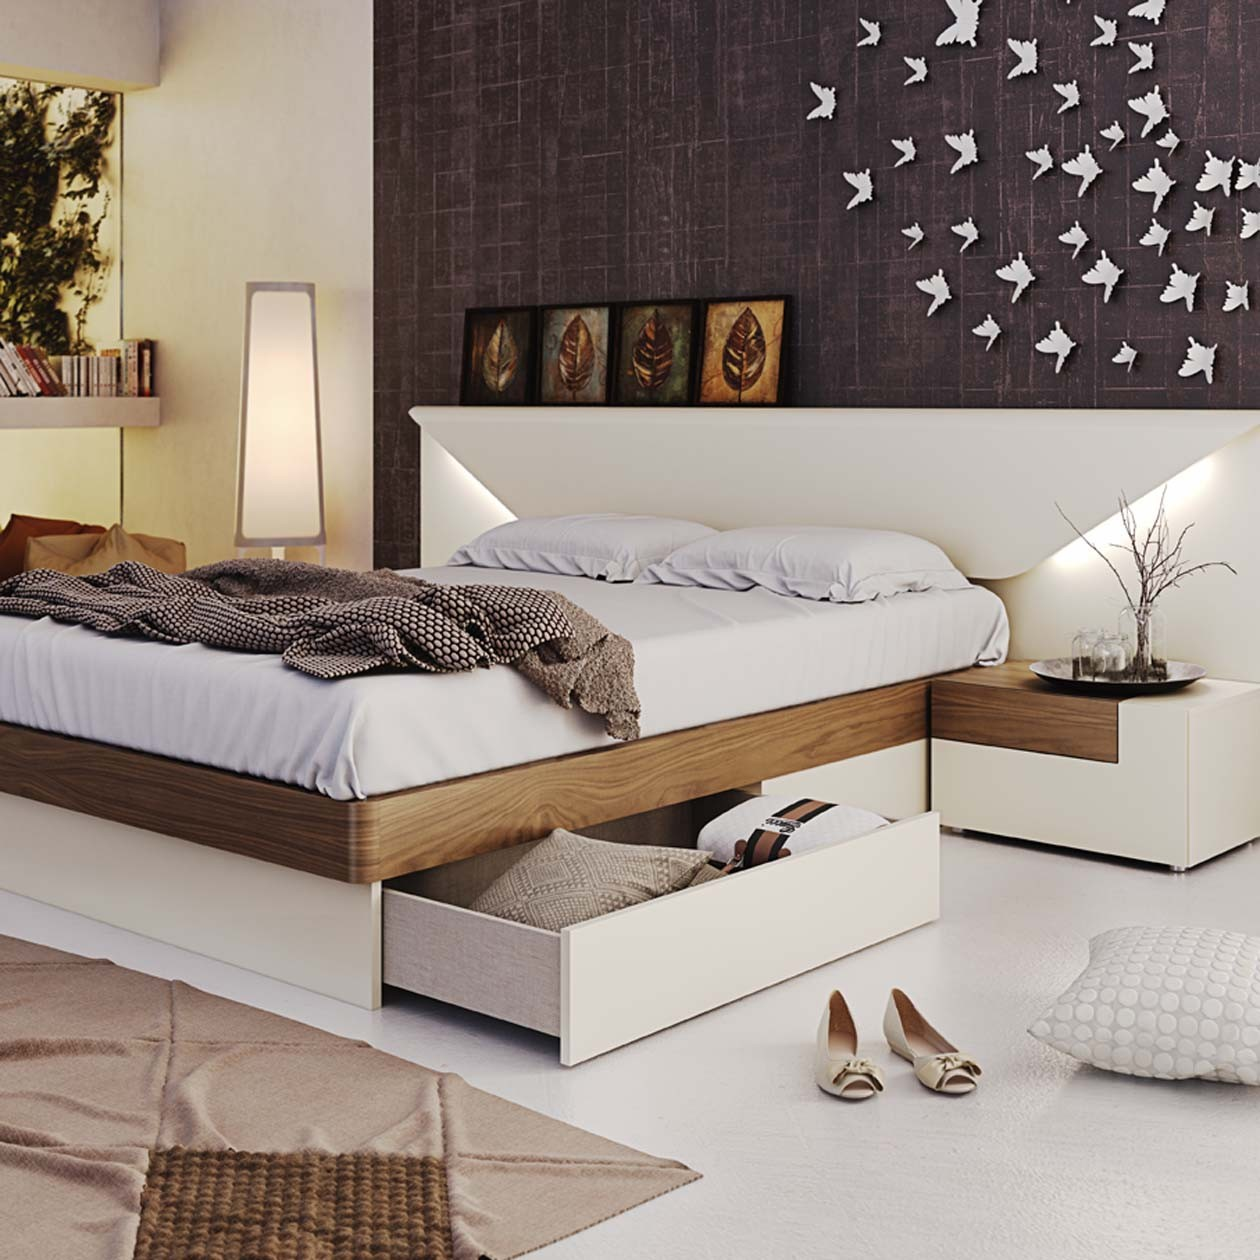 Elena modern italian bedroom set n star modern furniture Bedrooms furniture